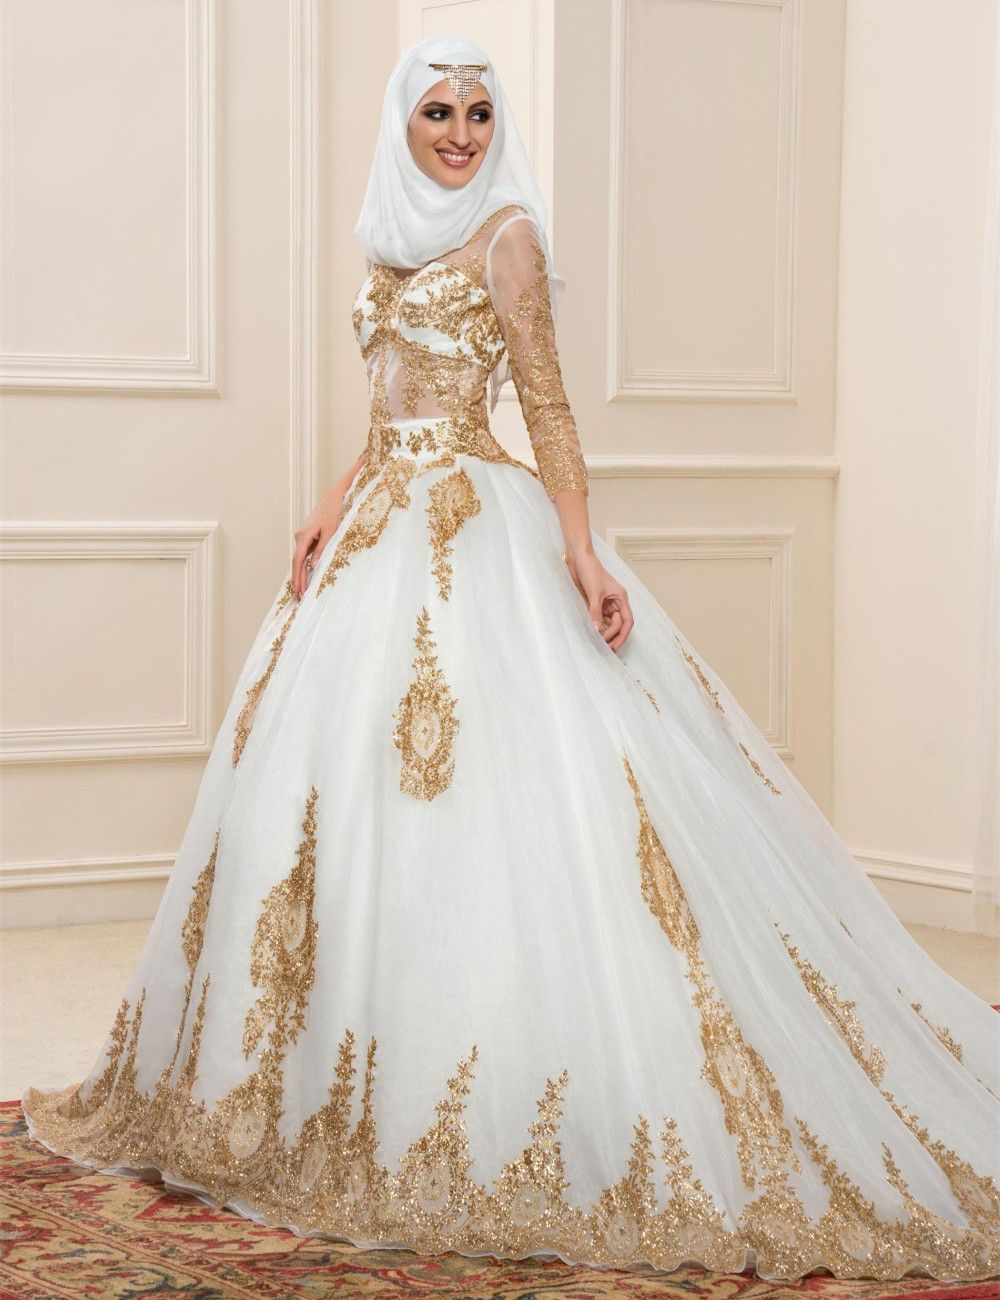 robe de mariée hijab - Google Search | haut couture | Pinterest ...